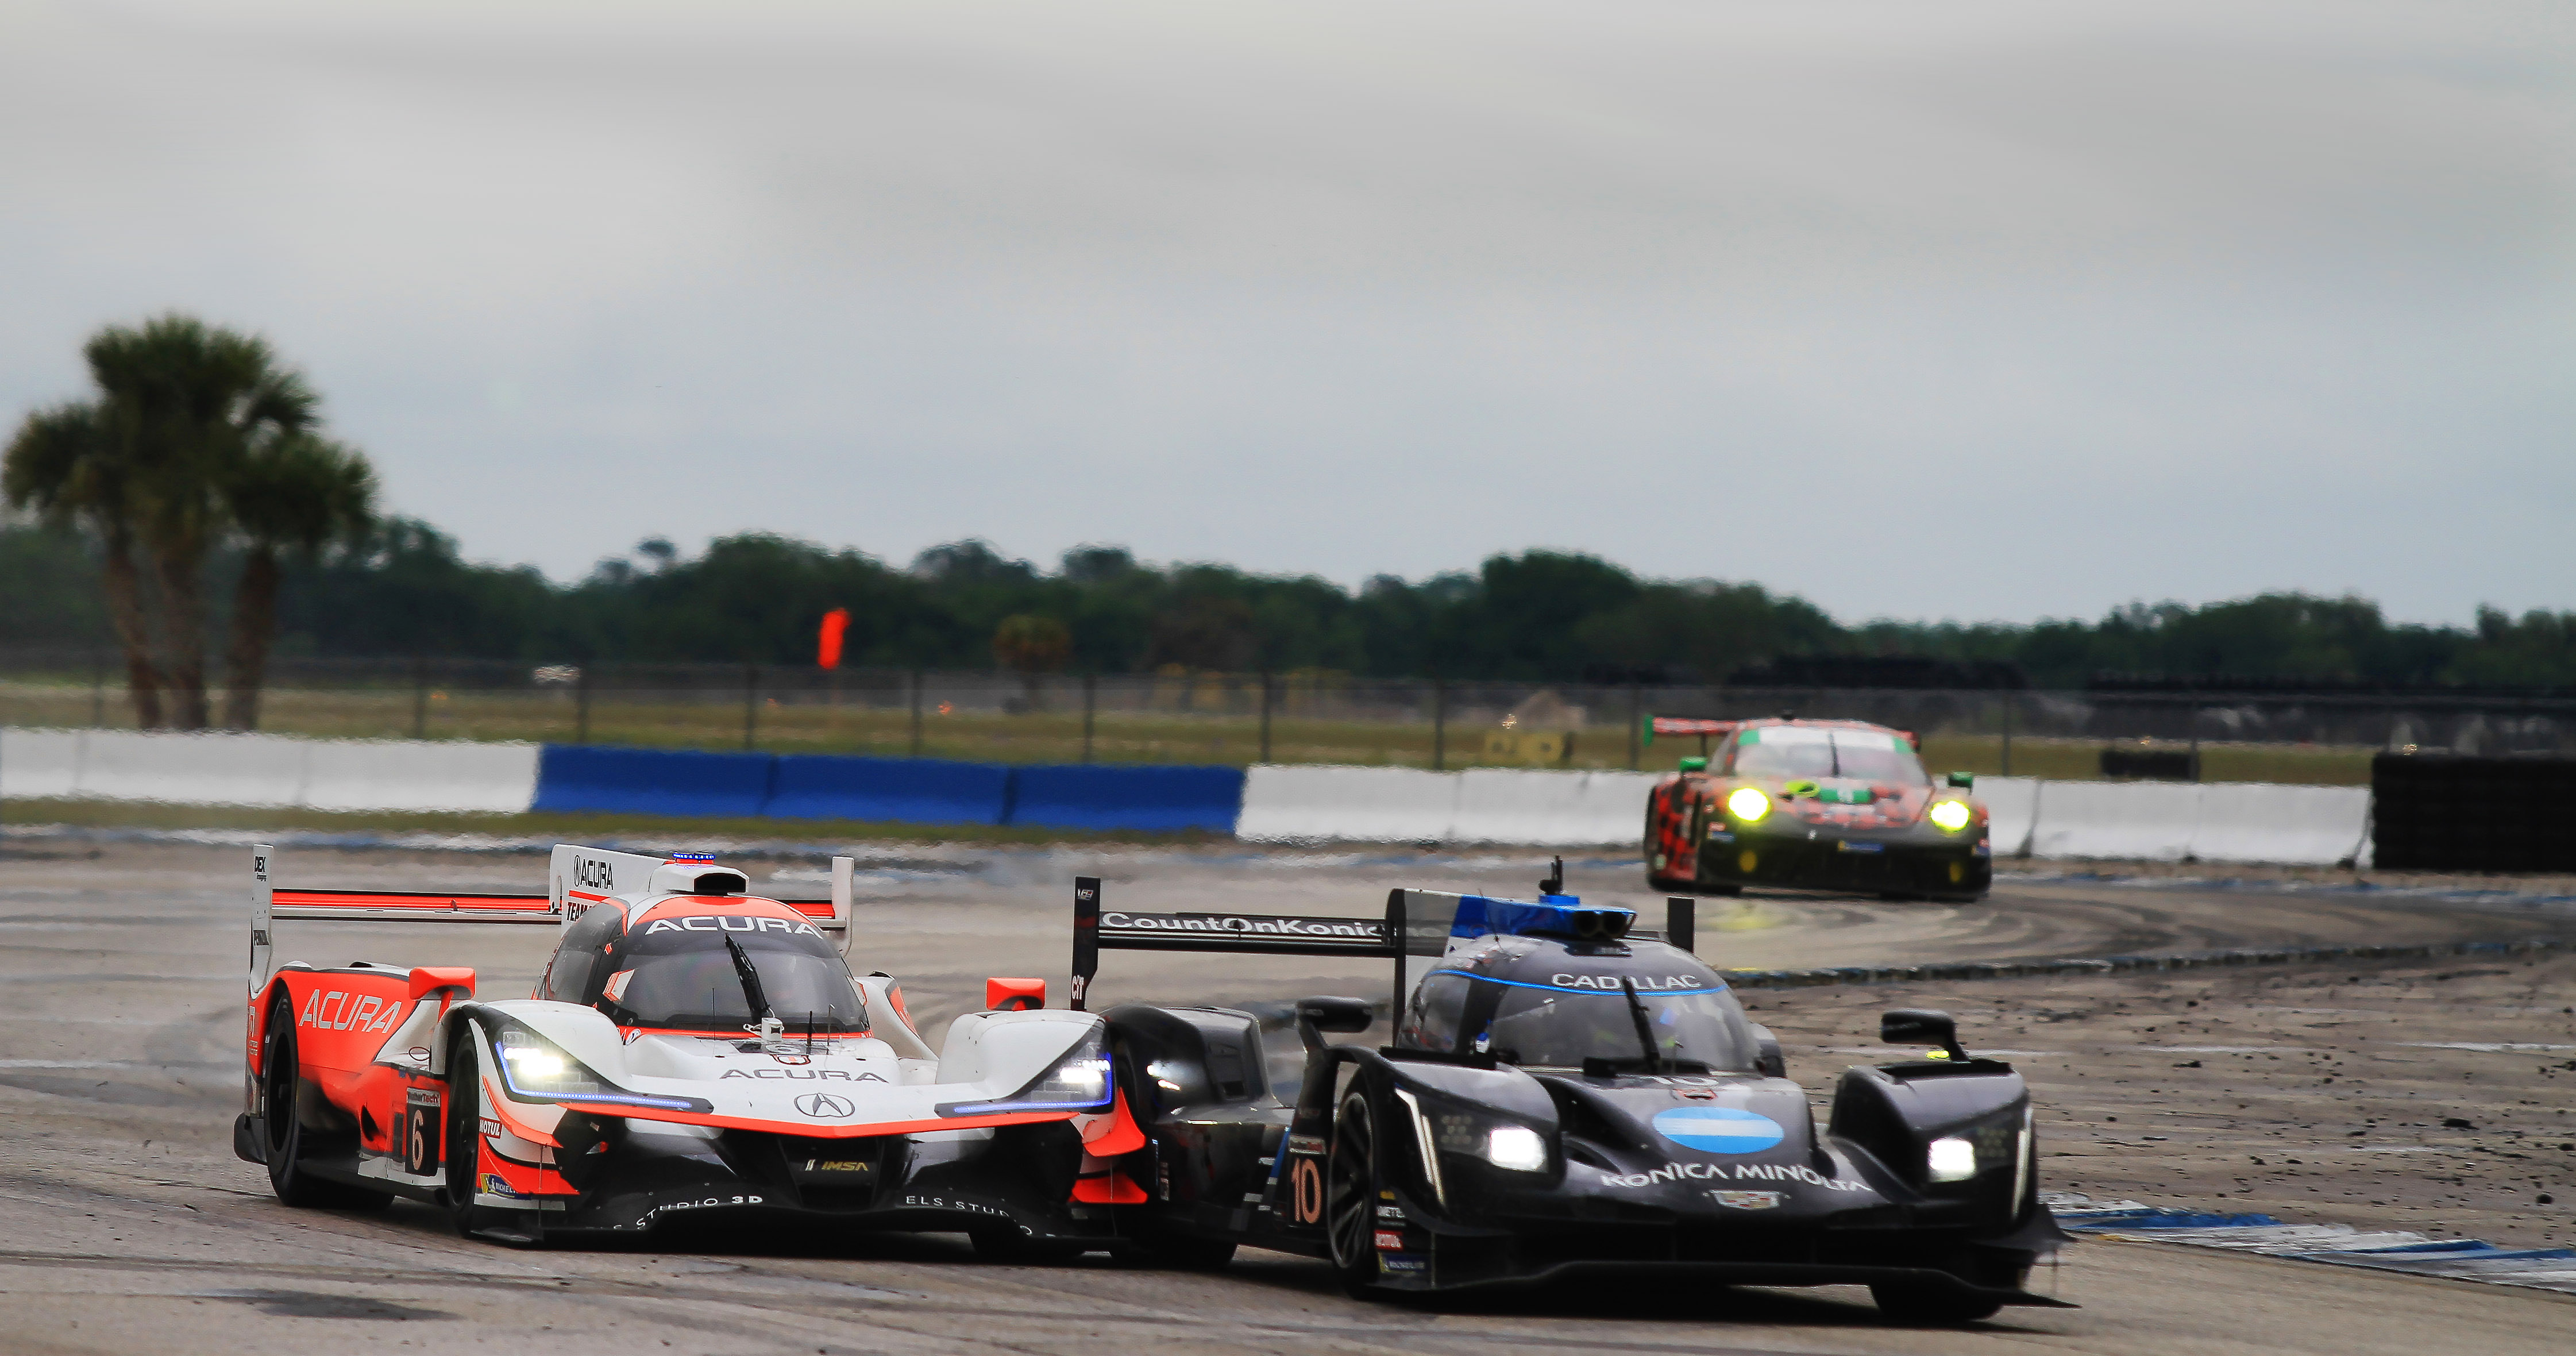 The #6 Acura and #10 WTR Cadillac battle for position